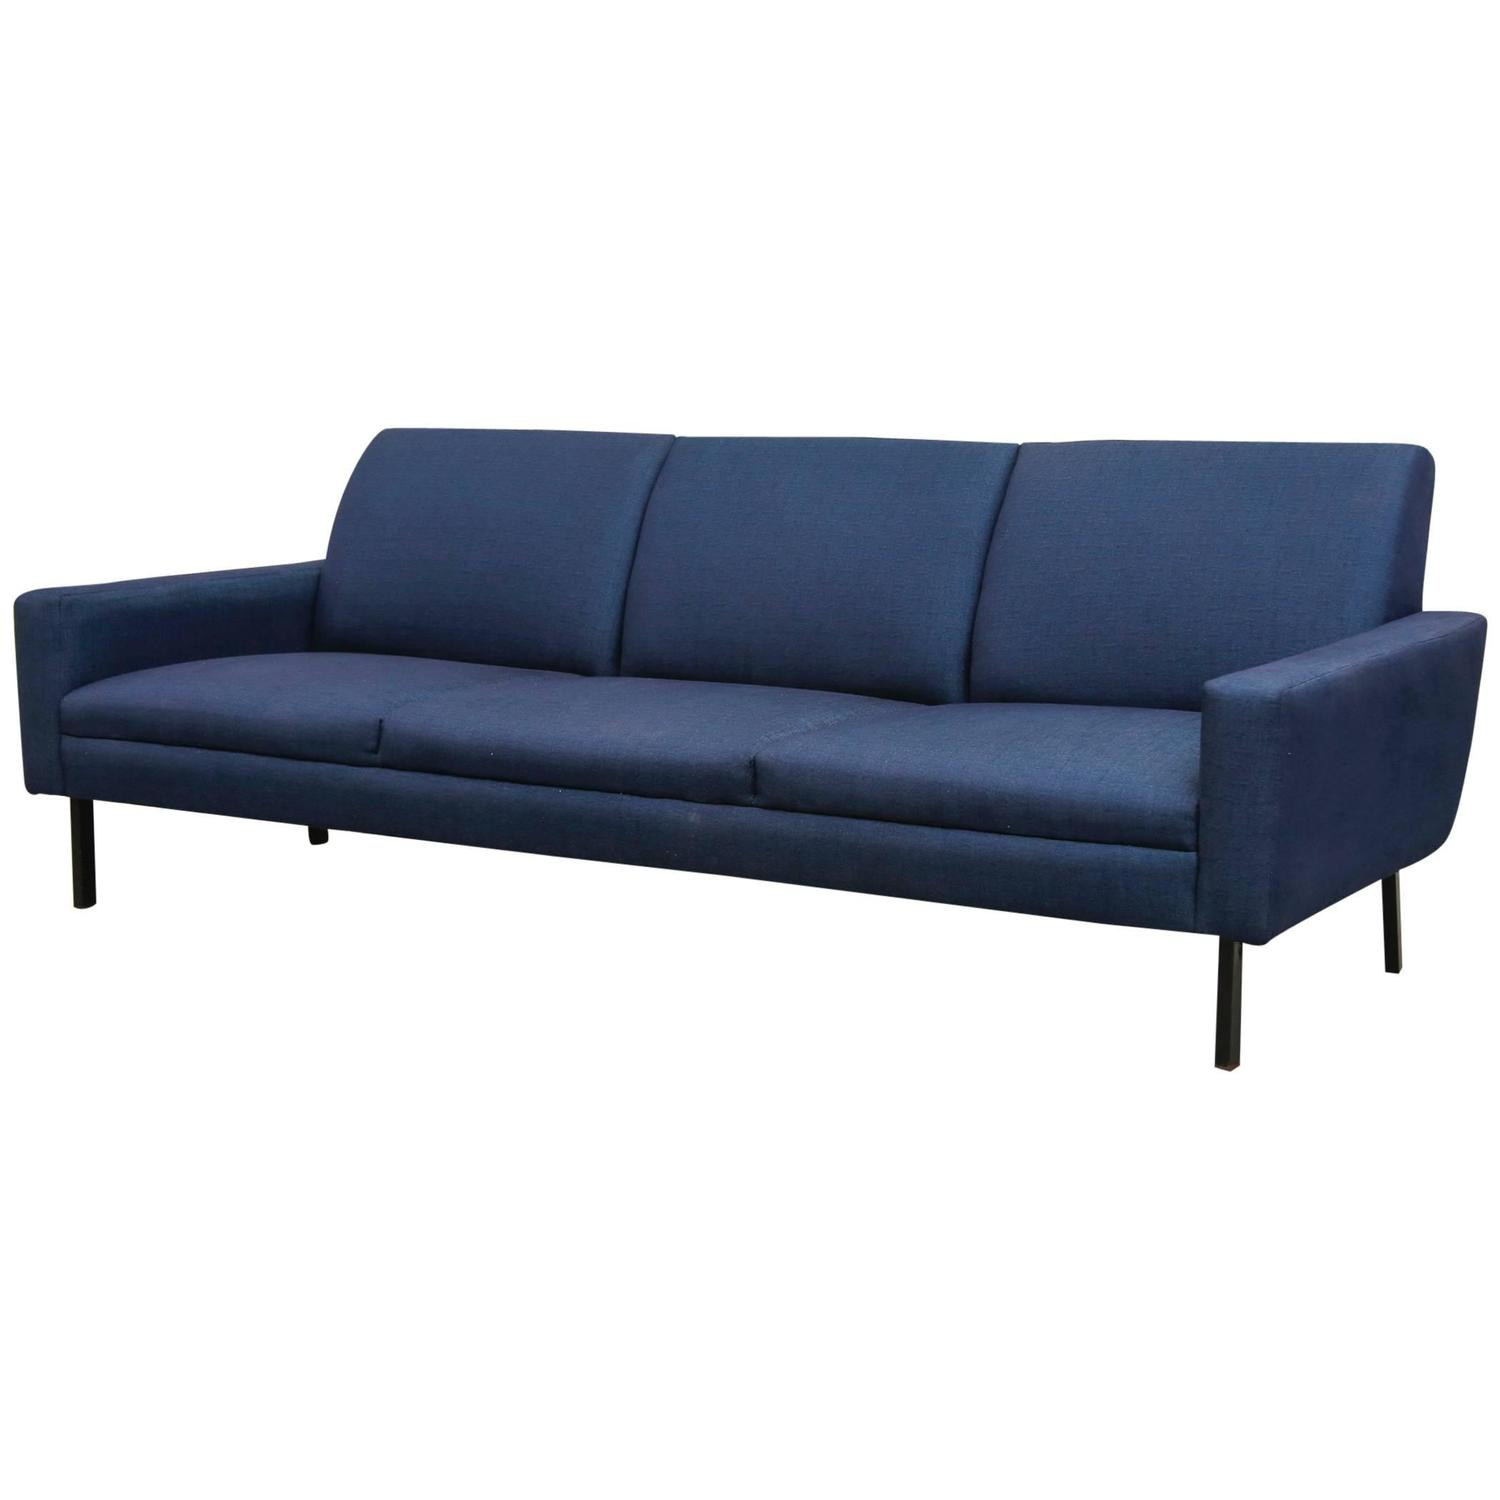 Classic mid century gelderland attributed three seater for Cleopatra sofa bed